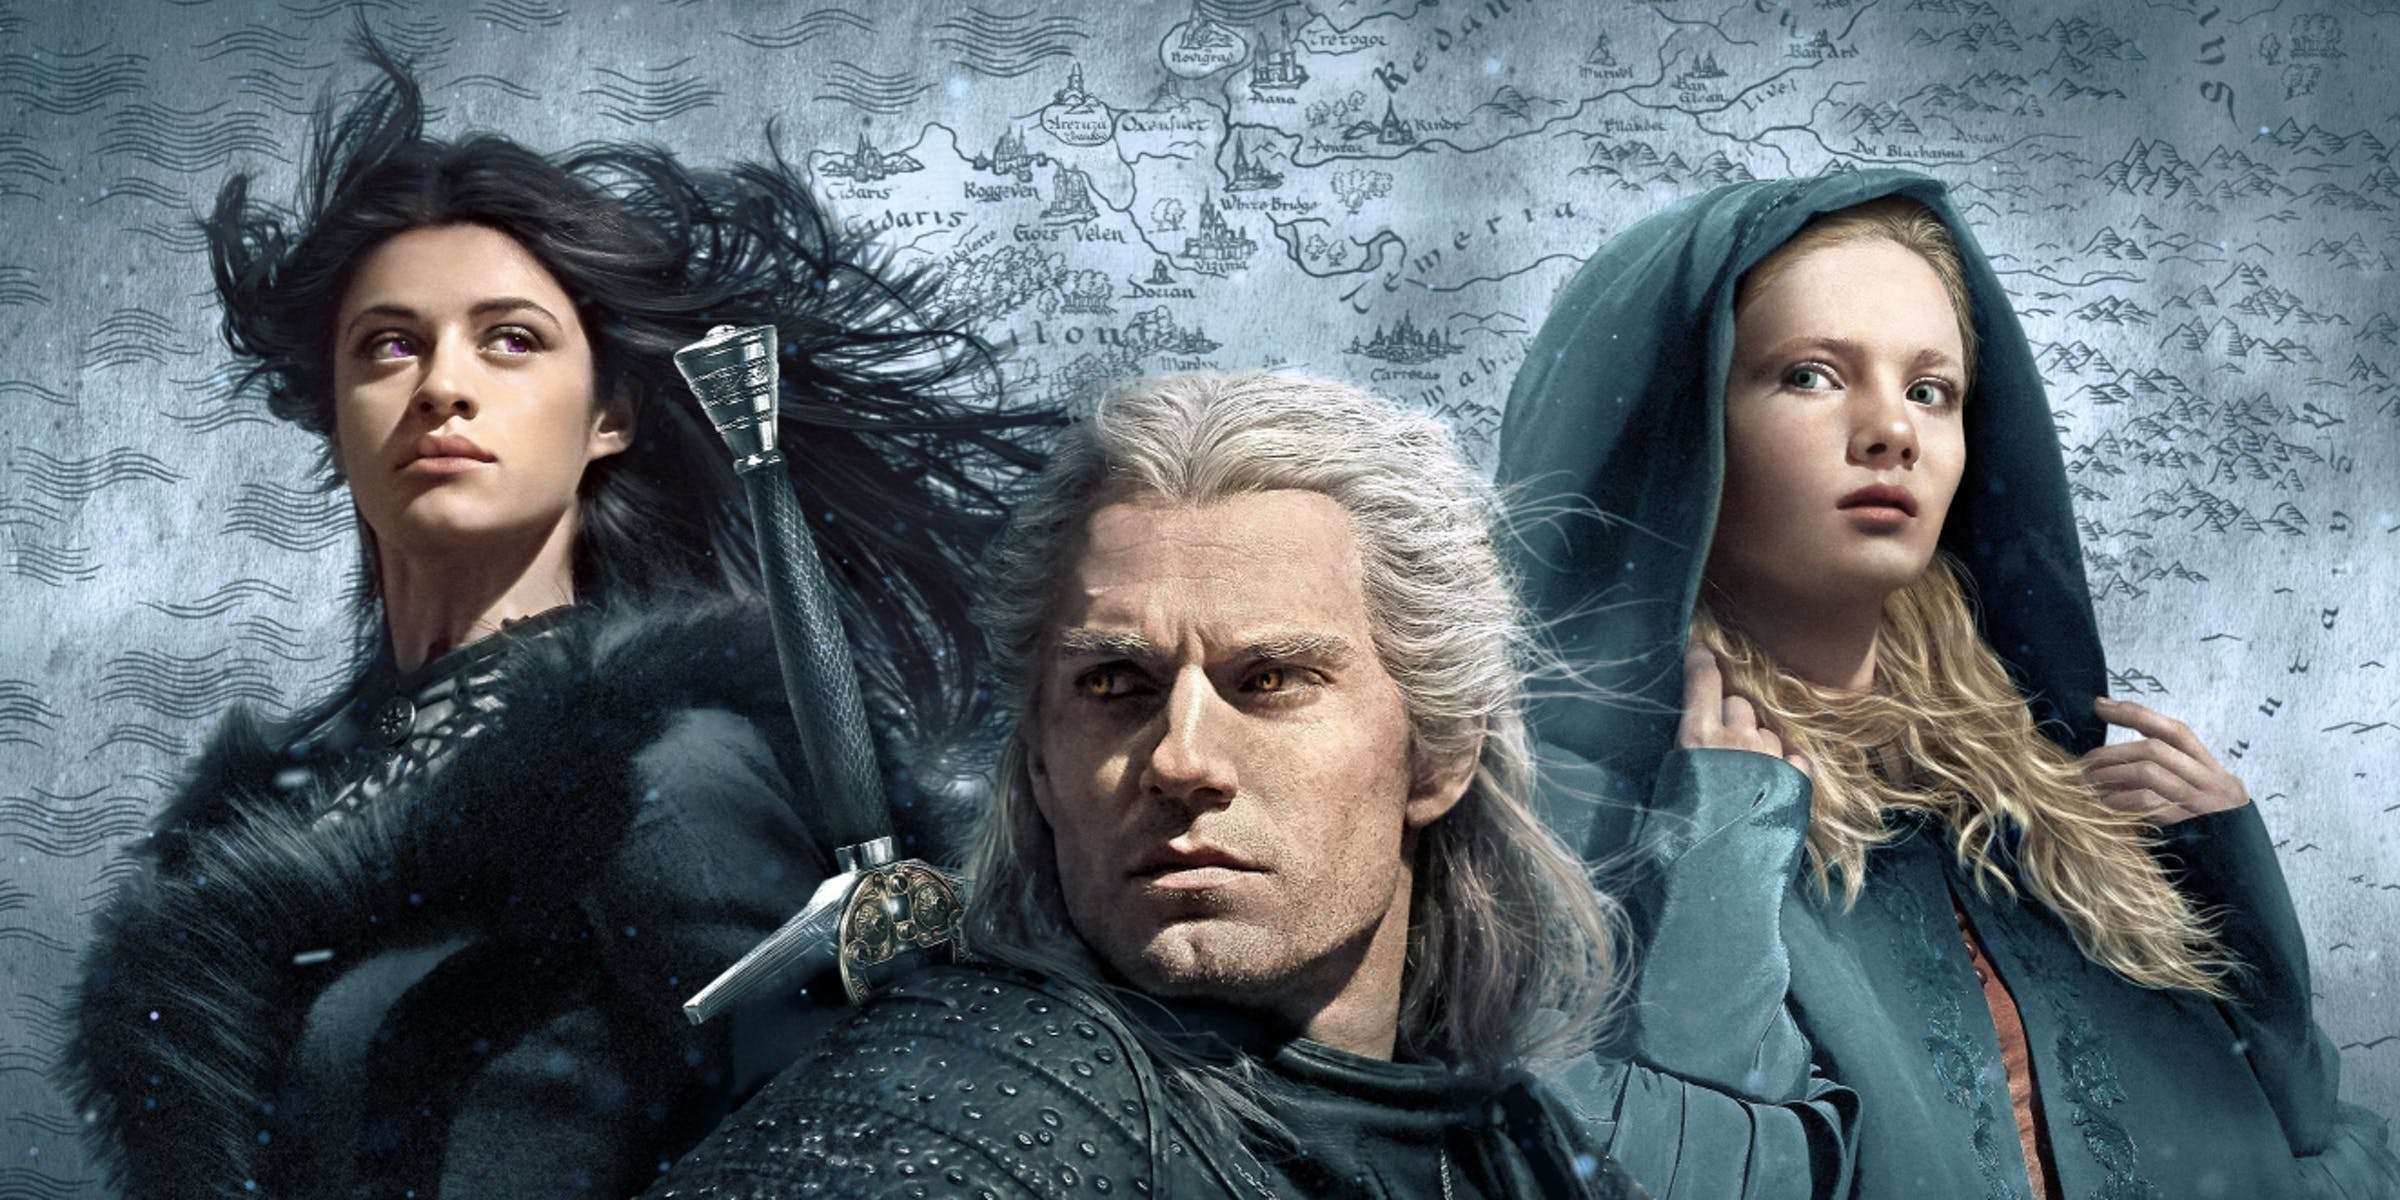 Yennefer, Geralt, and Ciri in 'The Witcher' on Netflix